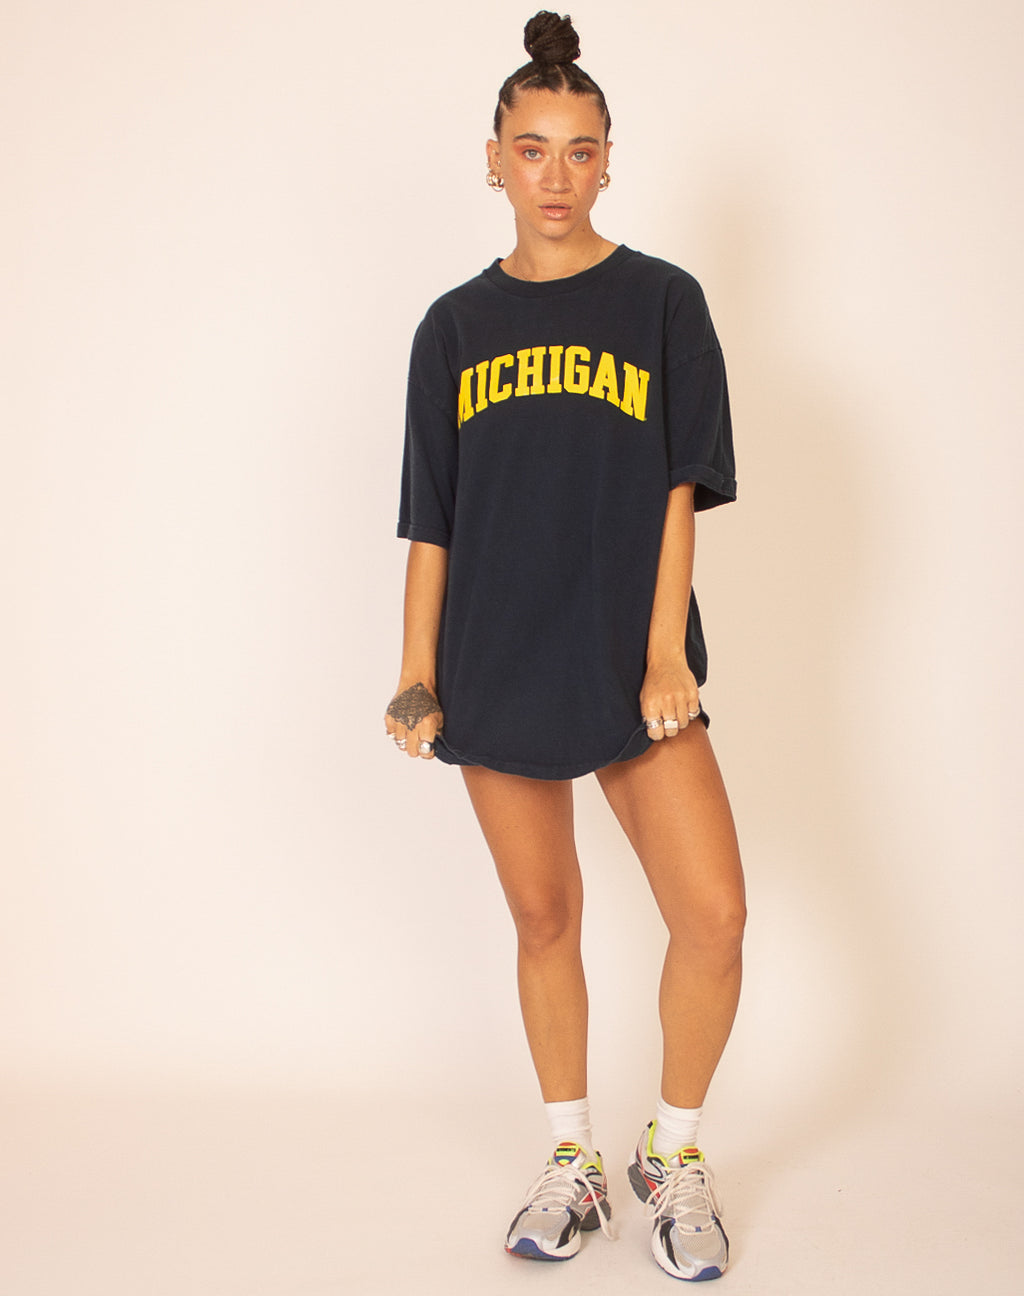 OVERSIZED MICHIGAN T-SHIRT